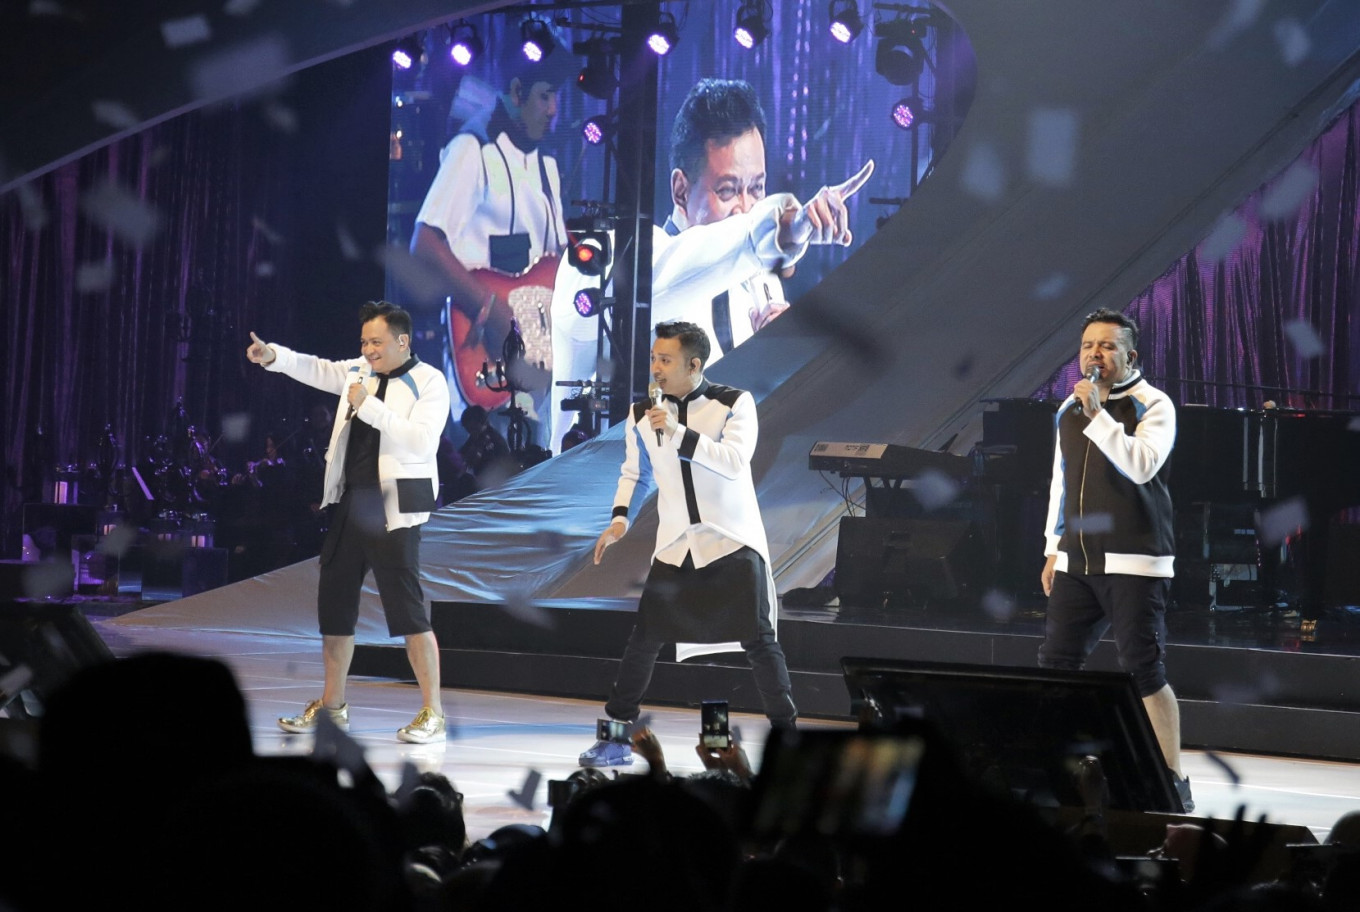 Drive-in concert to make stop in Central Jakarta in late August